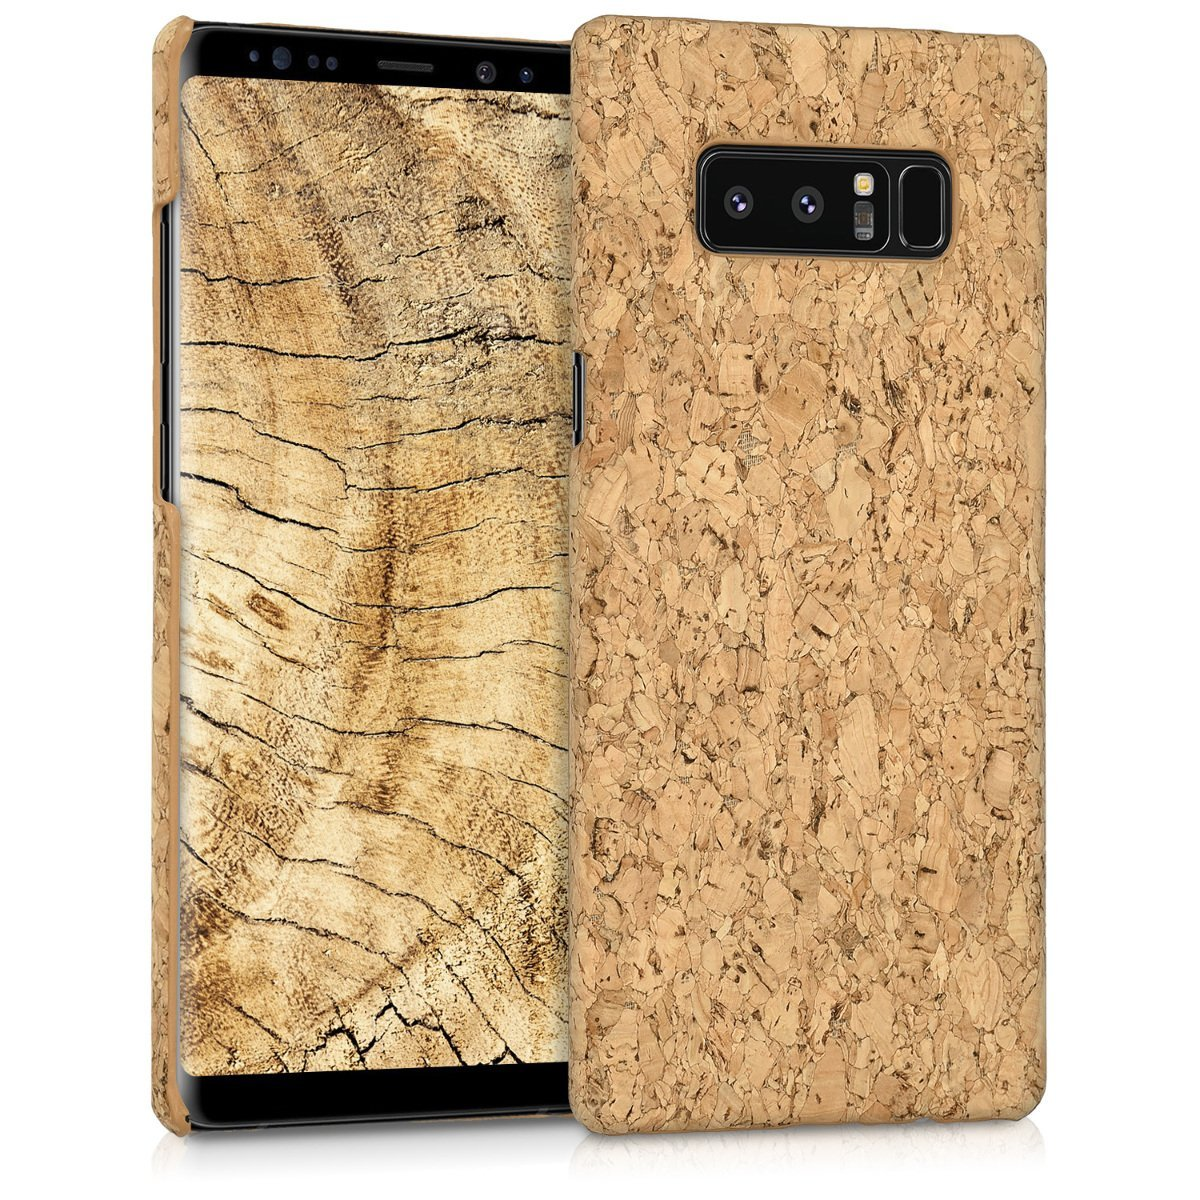 KW Σκληρή Θήκη Samsung Galaxy Note 8 - Light Brown Cork (42845.24)